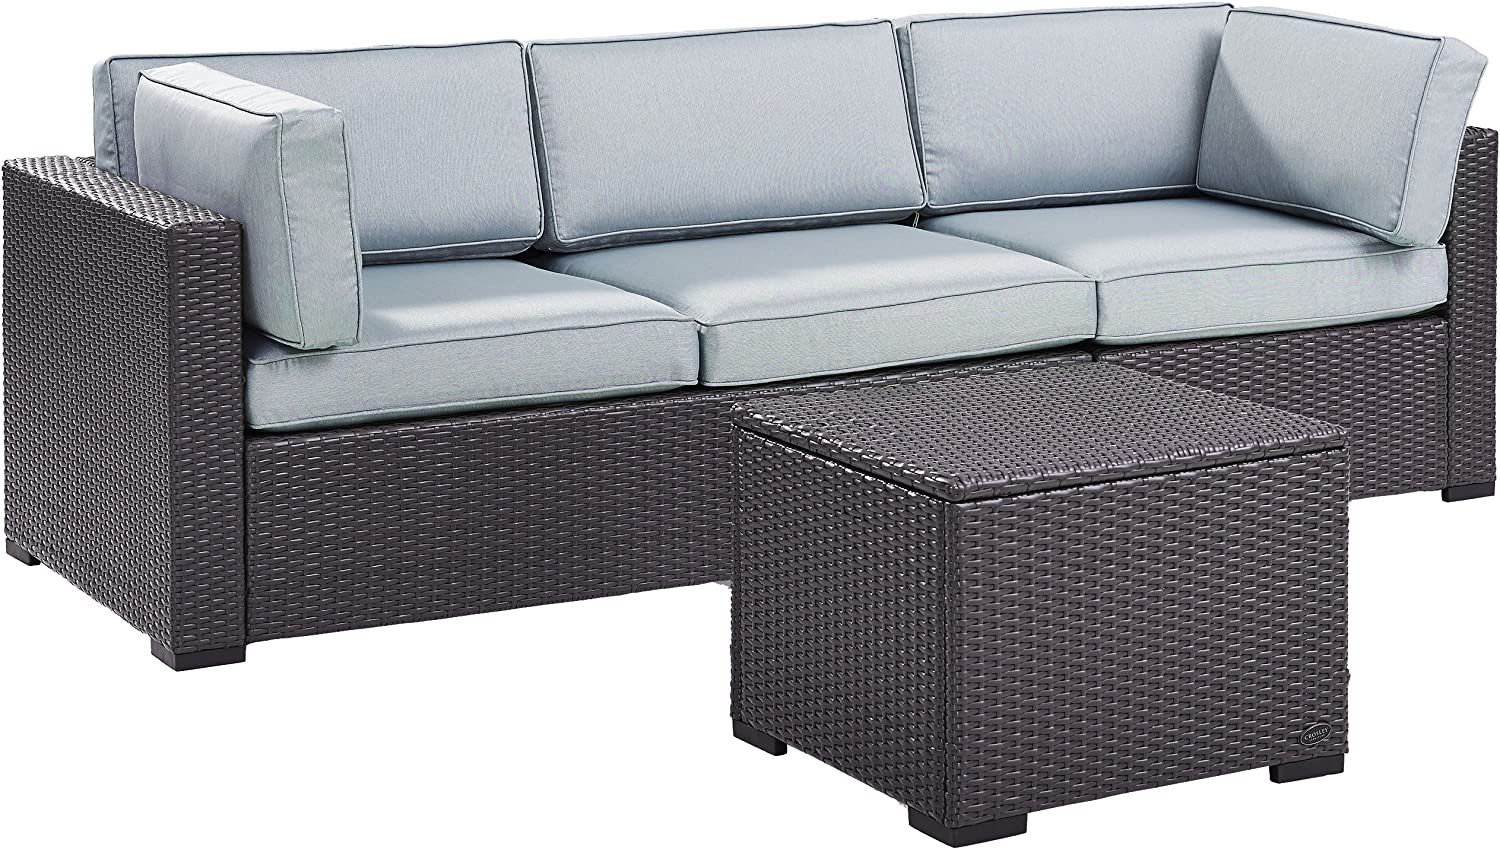 Crosley Furniture KO70111BR-MI Biscayne 3-Piece Outdoor Wicker Seating Set, Brown with Mist Cushions